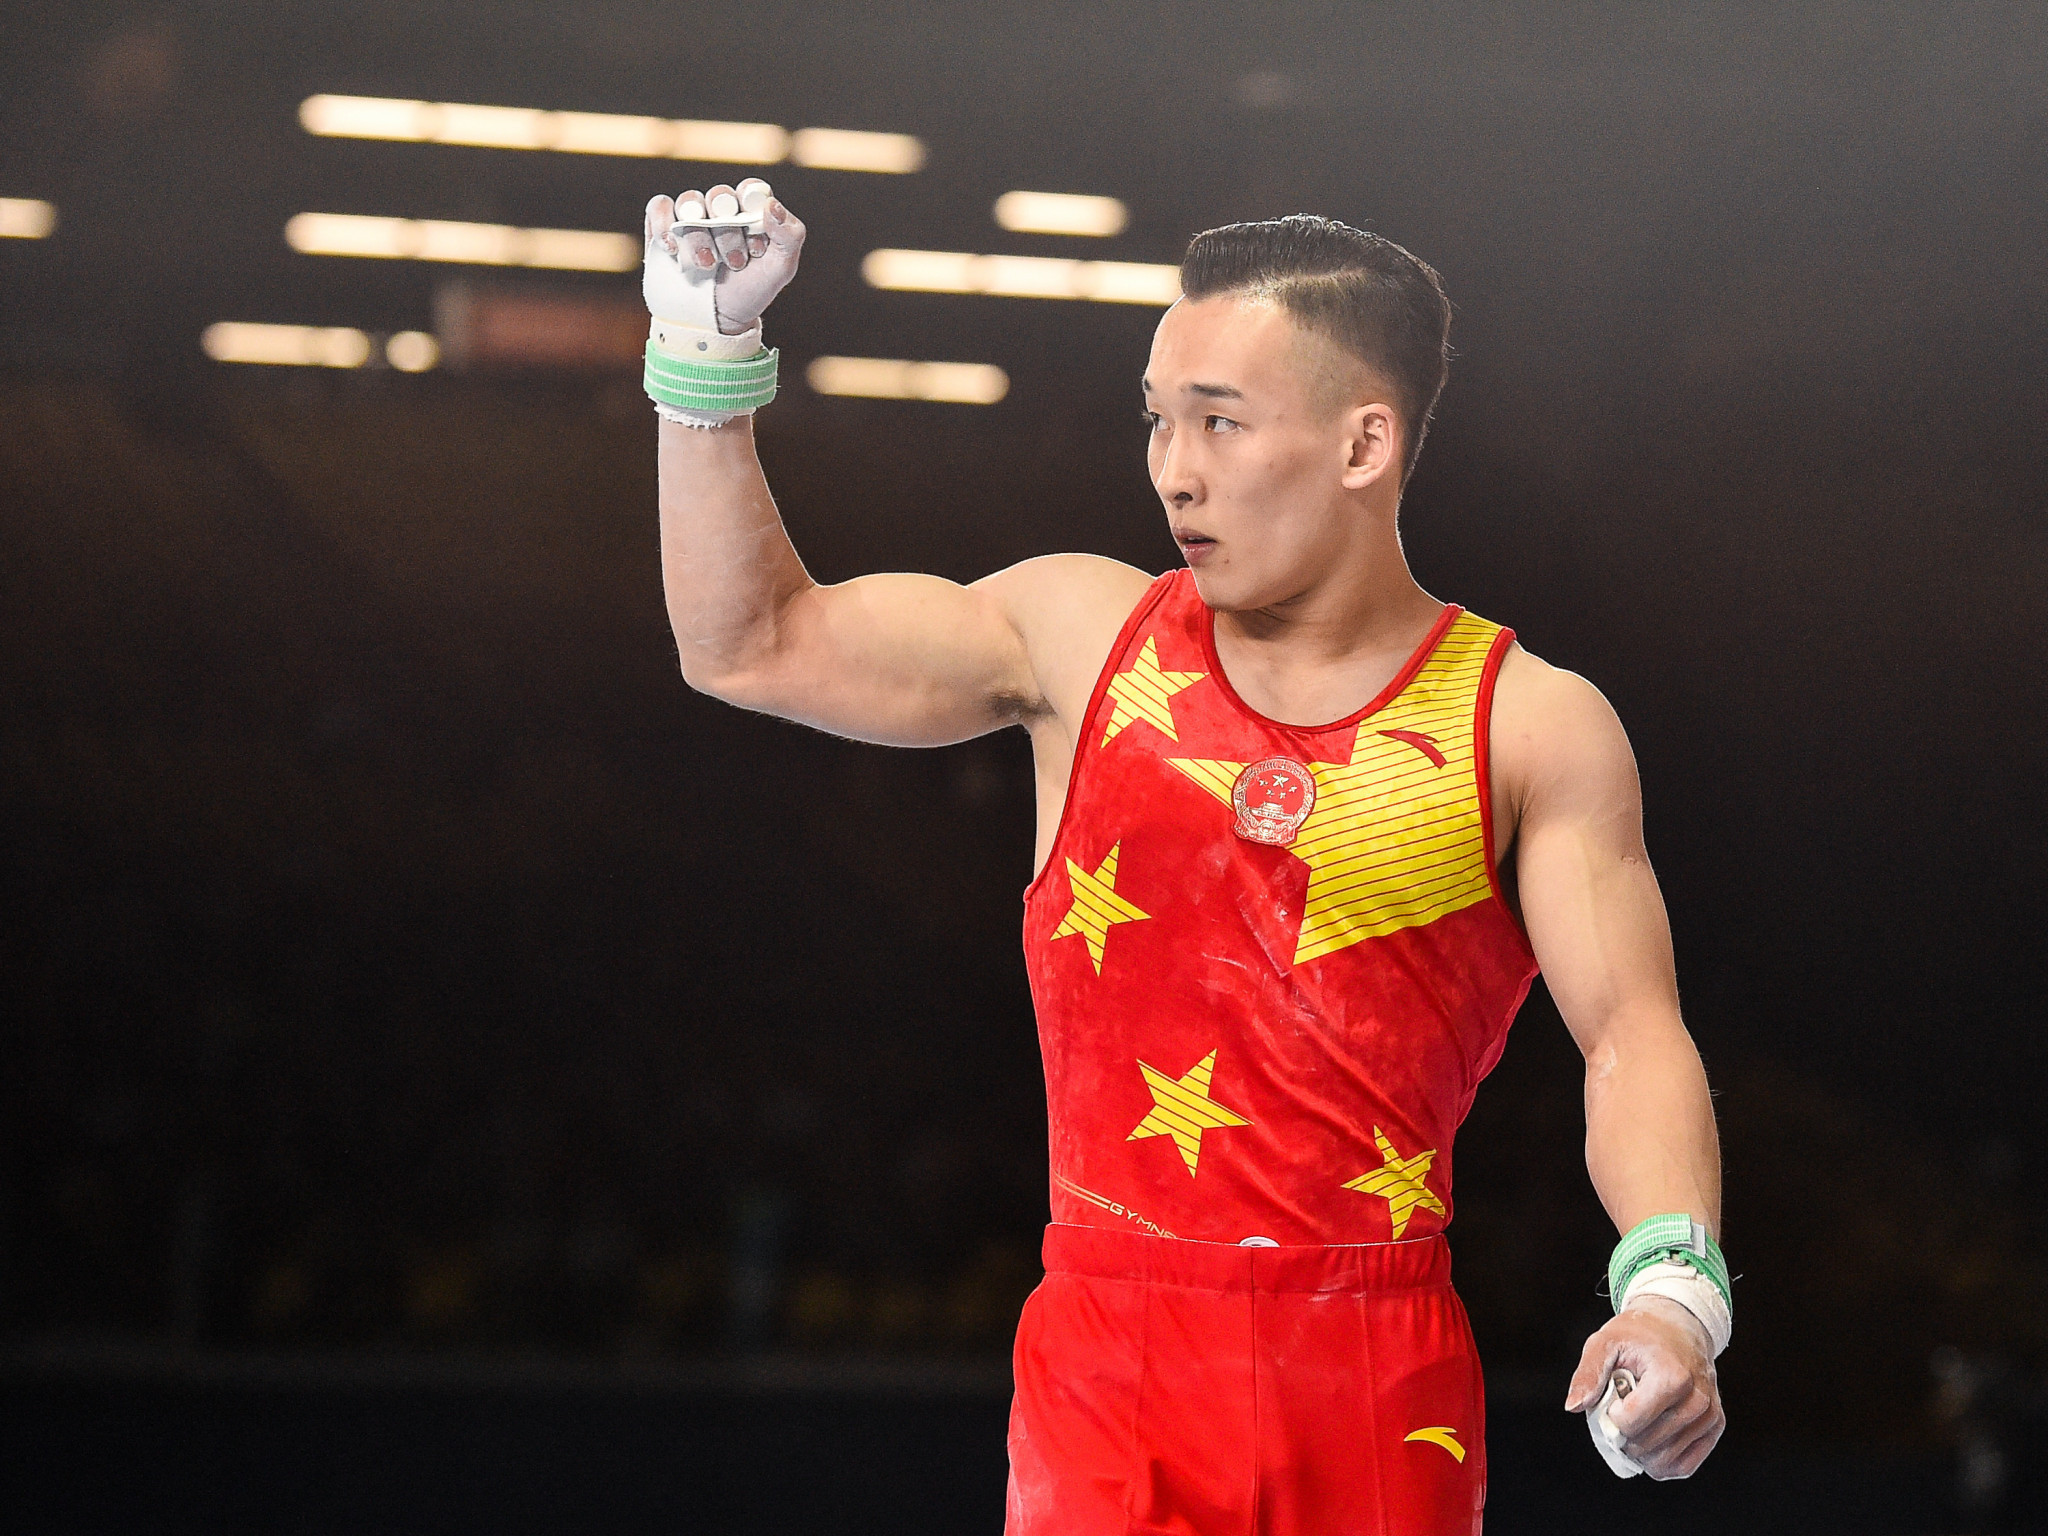 China's Xiao claims men's all-around title in thrilling final at Artistic Gymnastics World Championships